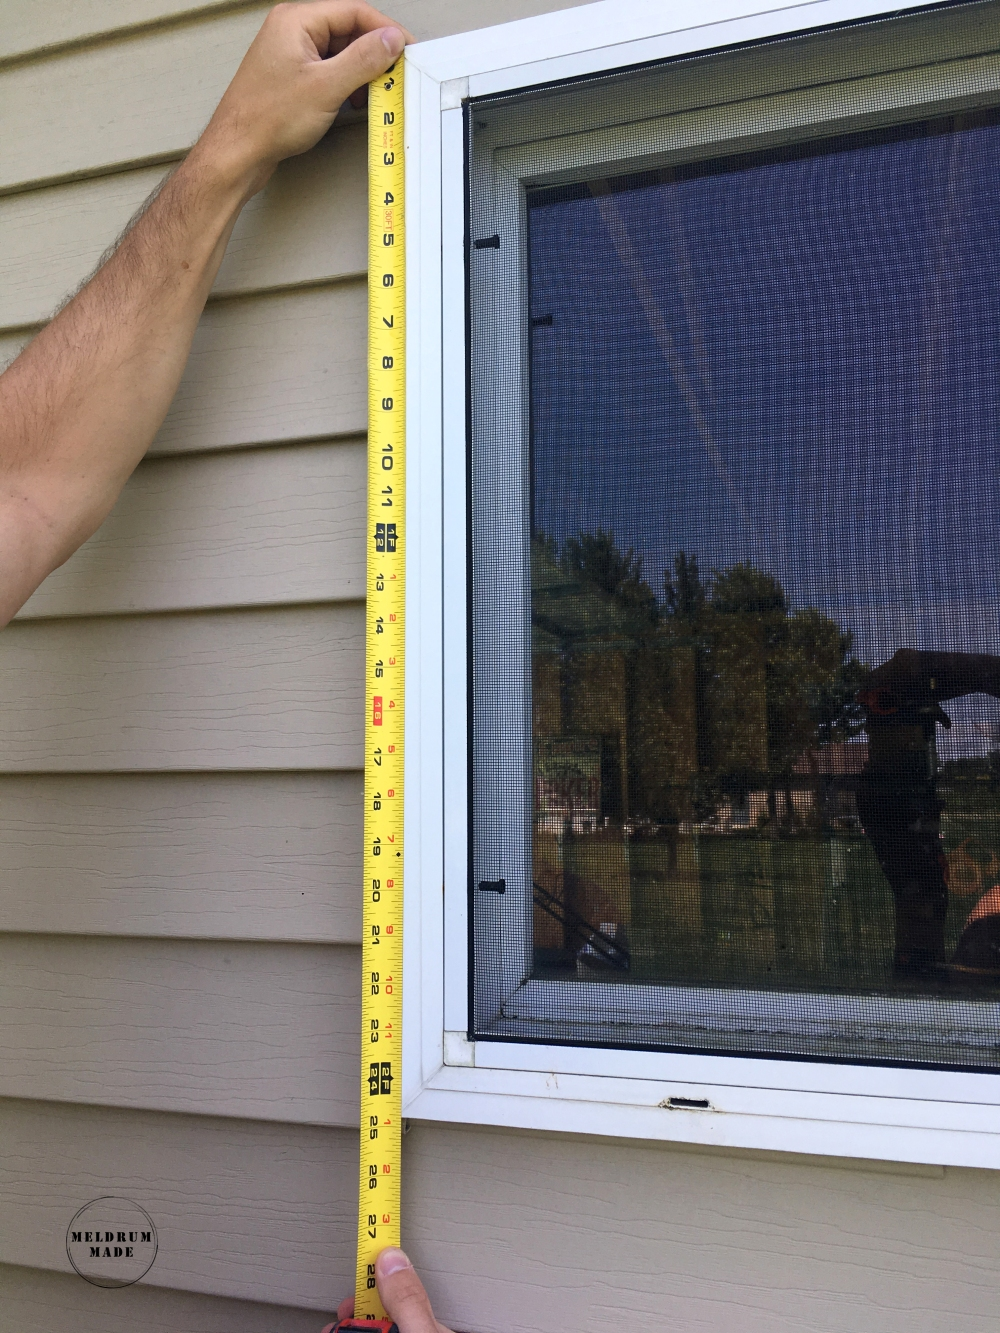 Measuring the window to build the board and batten shutters - we decided to custom build them to fit the entire height of the frame.